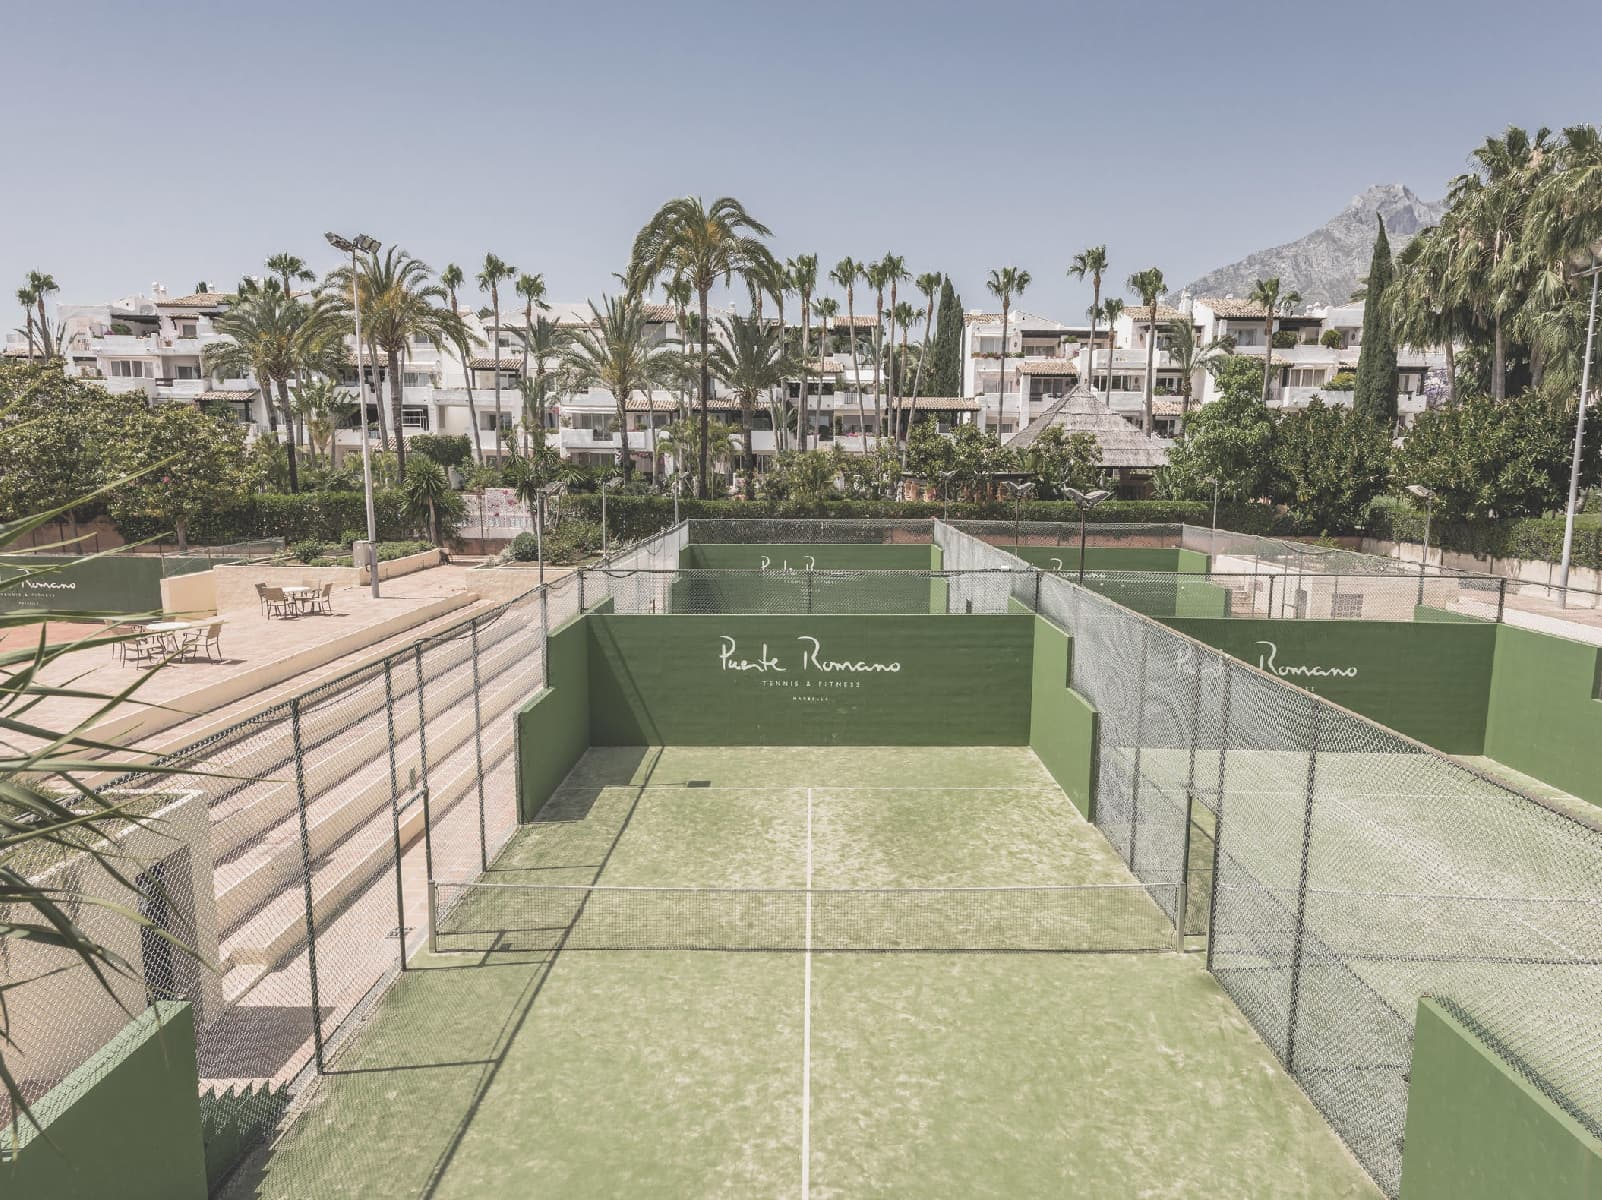 Puente Romano Beach Resort - one of the best tennis resorts for your tennis holidays in Marbella, Spain